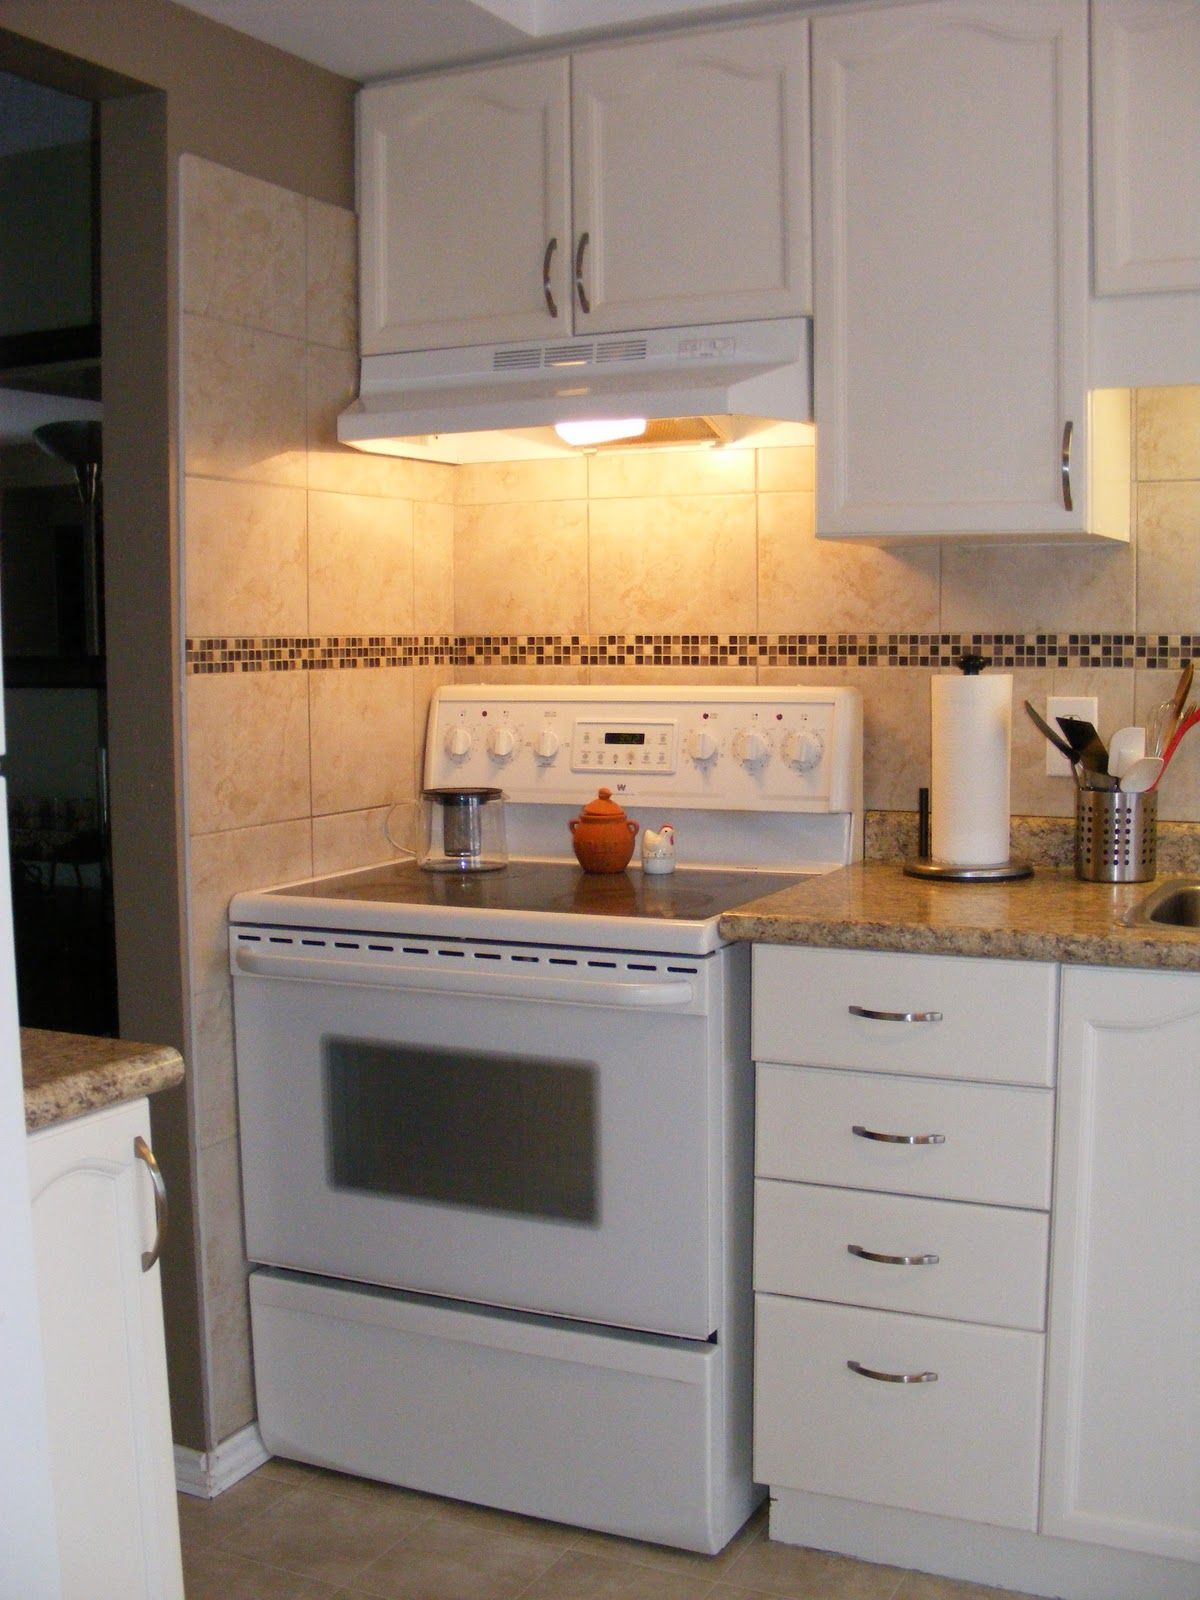 Kitchen Exhaust Hoods Liances Cabinets Dirty Extractor